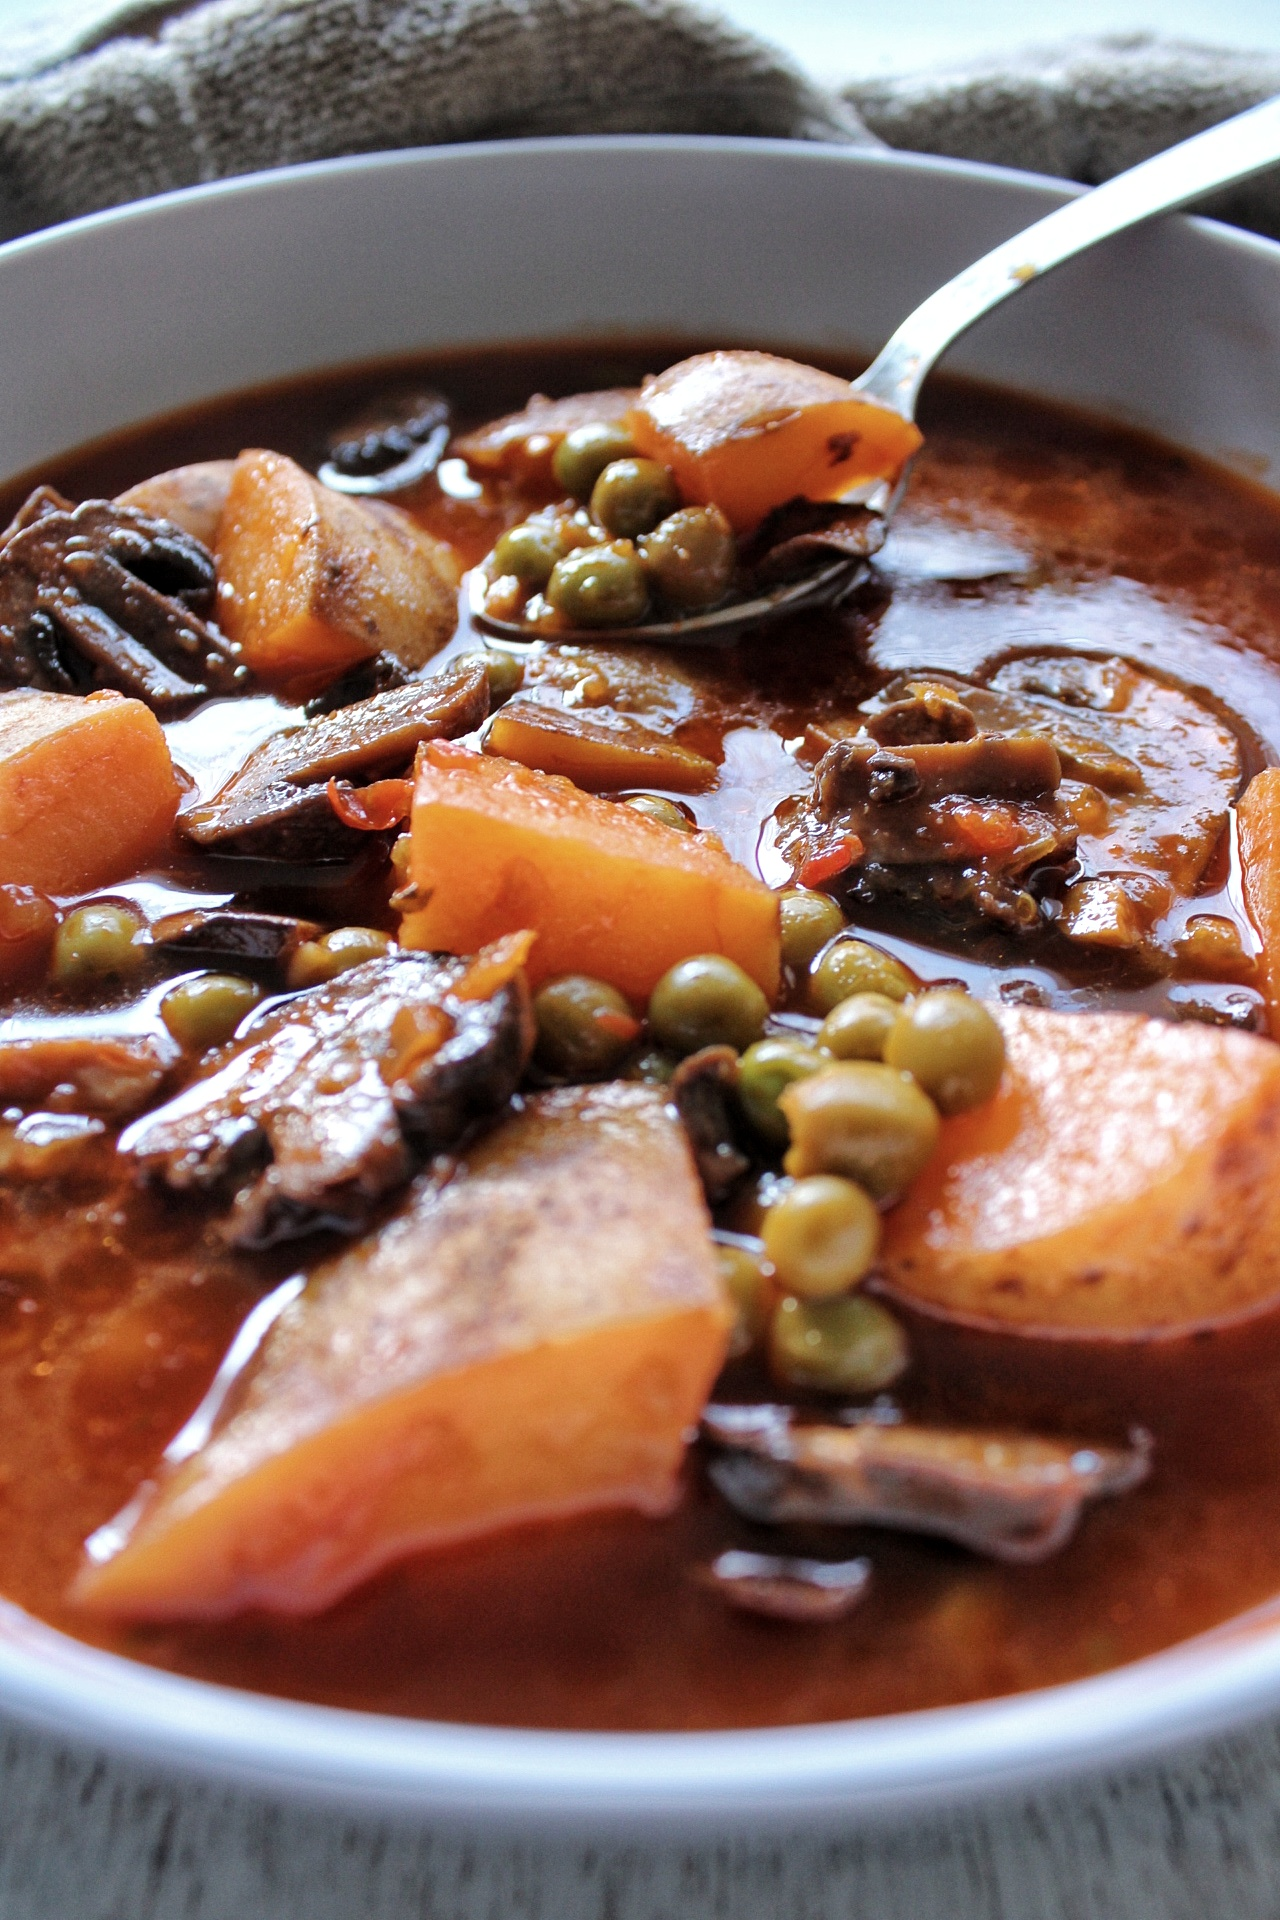 Soup close-up with potatoes, peas, and mushrooms